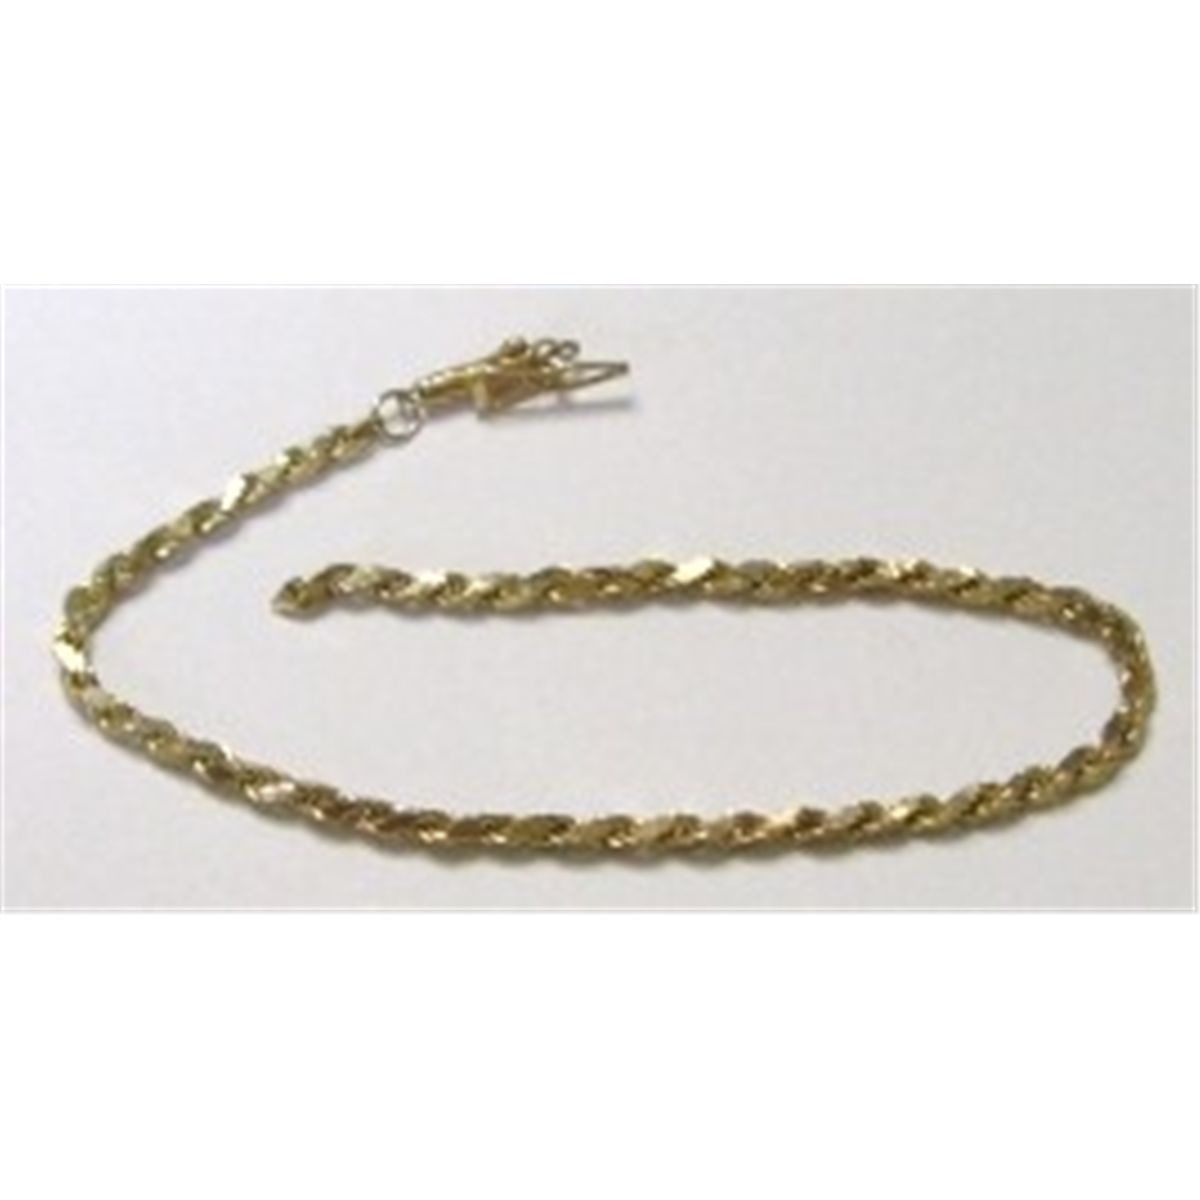 Solid 14k Gold Italy Bracelet Broken Bracelets Total Weight Is 1 53 Grams Clasp Stamped